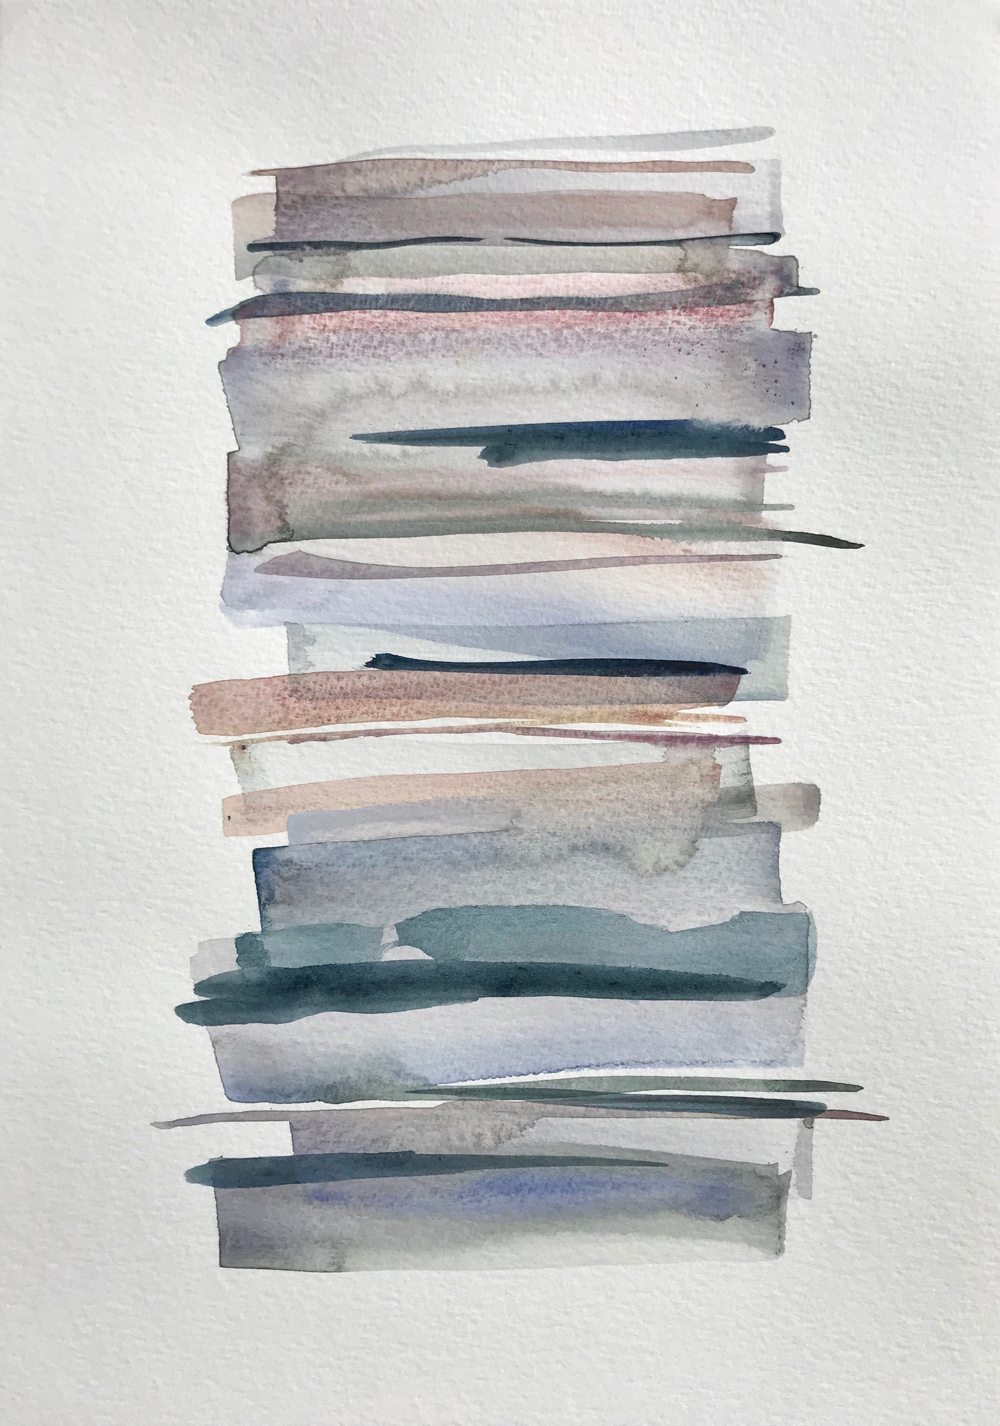 Stacks 18_ Watercolour Painting with pastel coloured stripes that look like piled up books